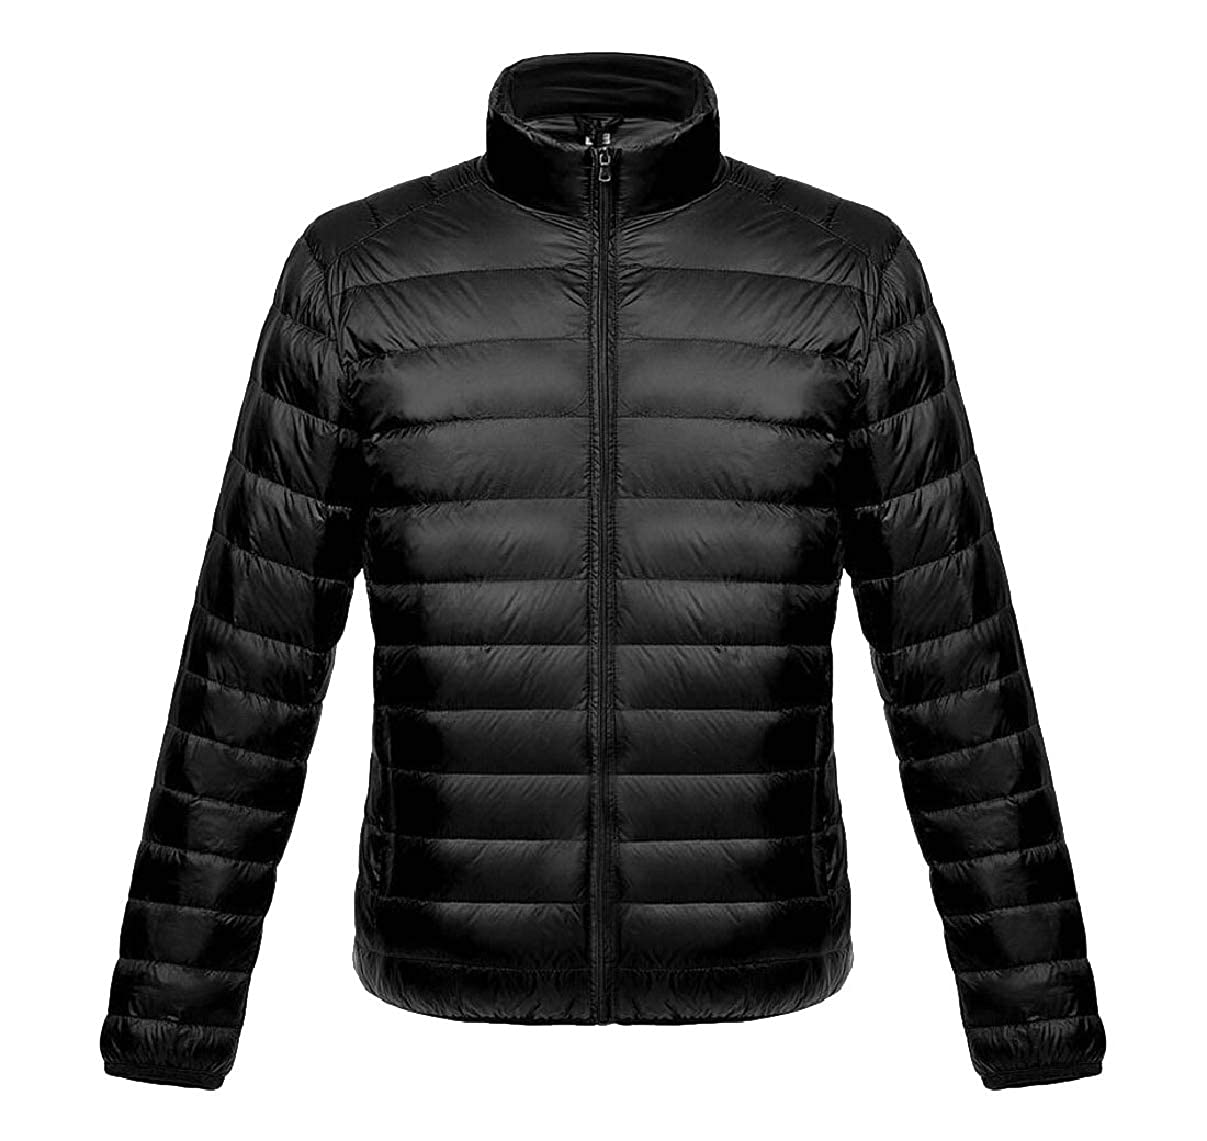 ZXFHZS Mens Solid Zipper Stand Collar Ultra Lightweight Down Jacket Coat